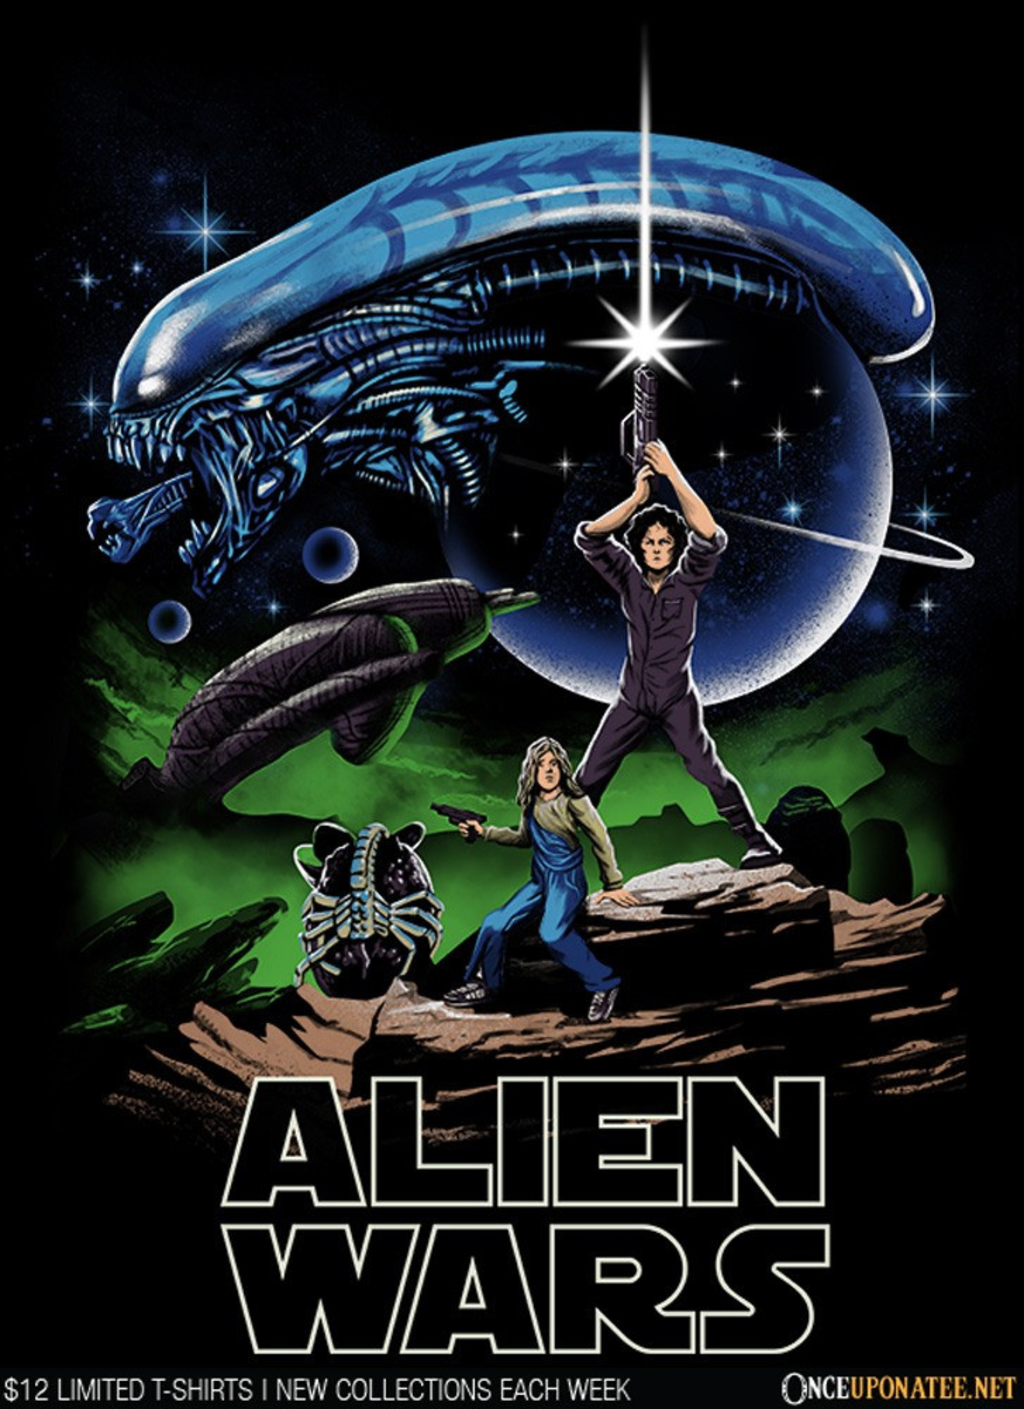 Once Upon a Tee: Alien Wars